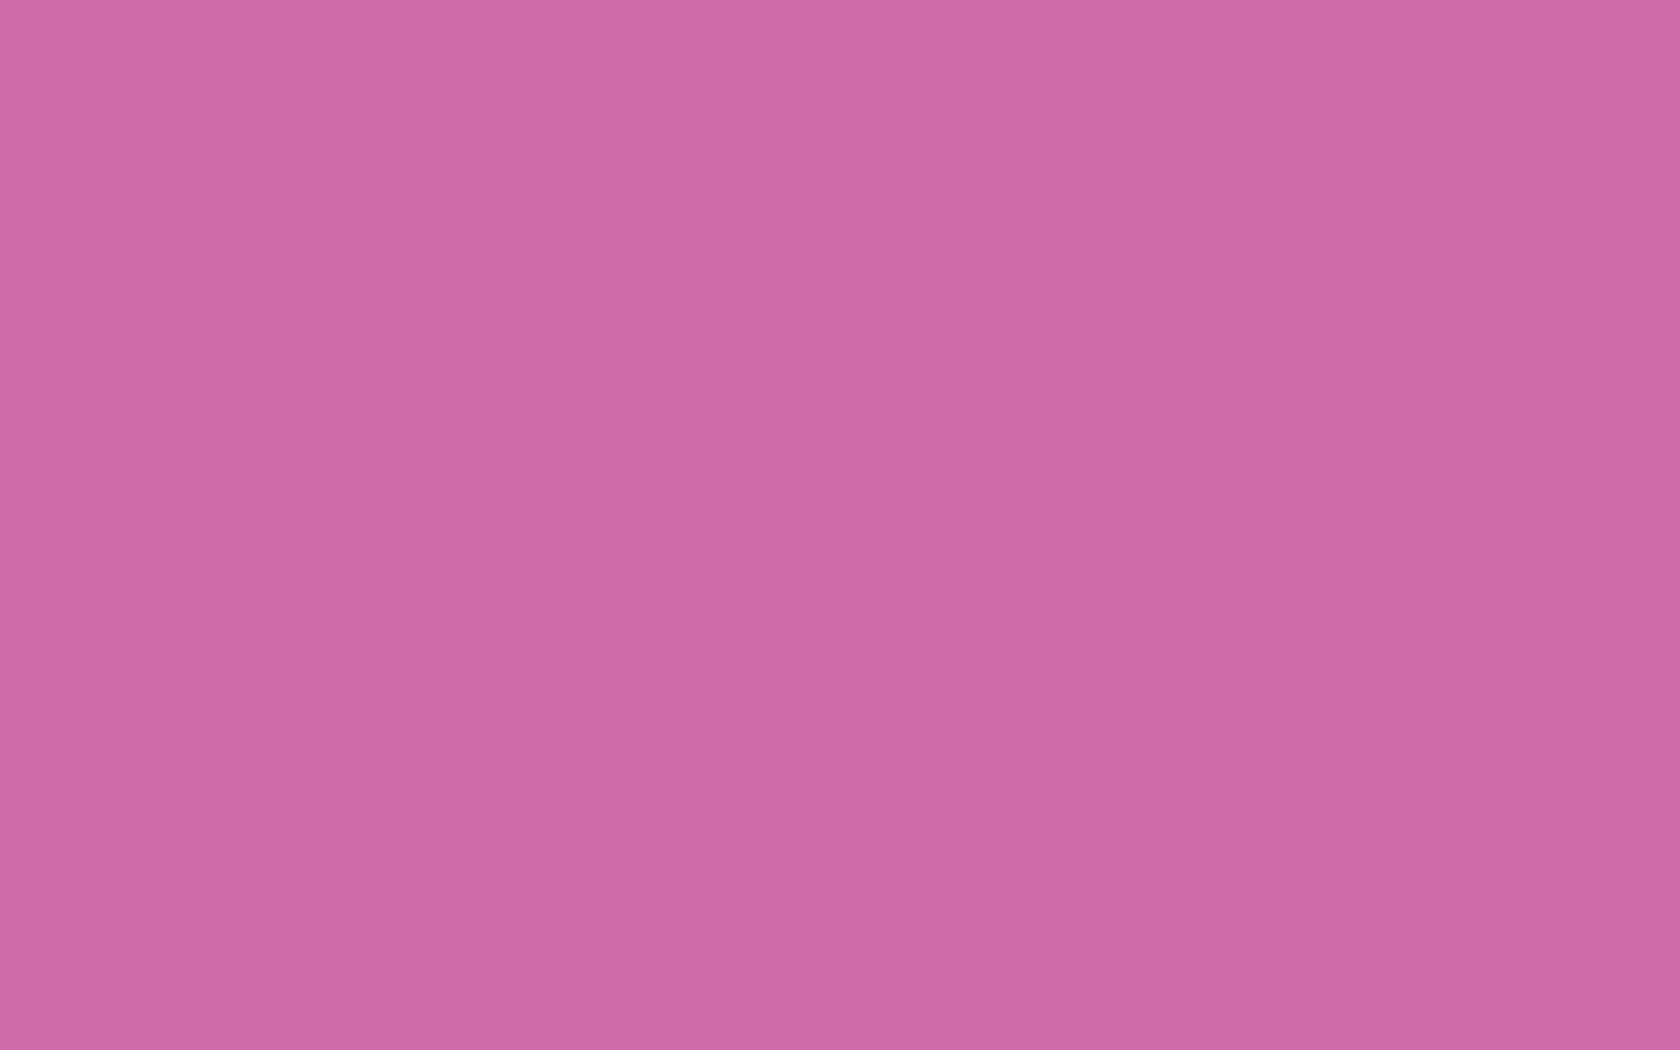 1680x1050 Super Pink Solid Color Background